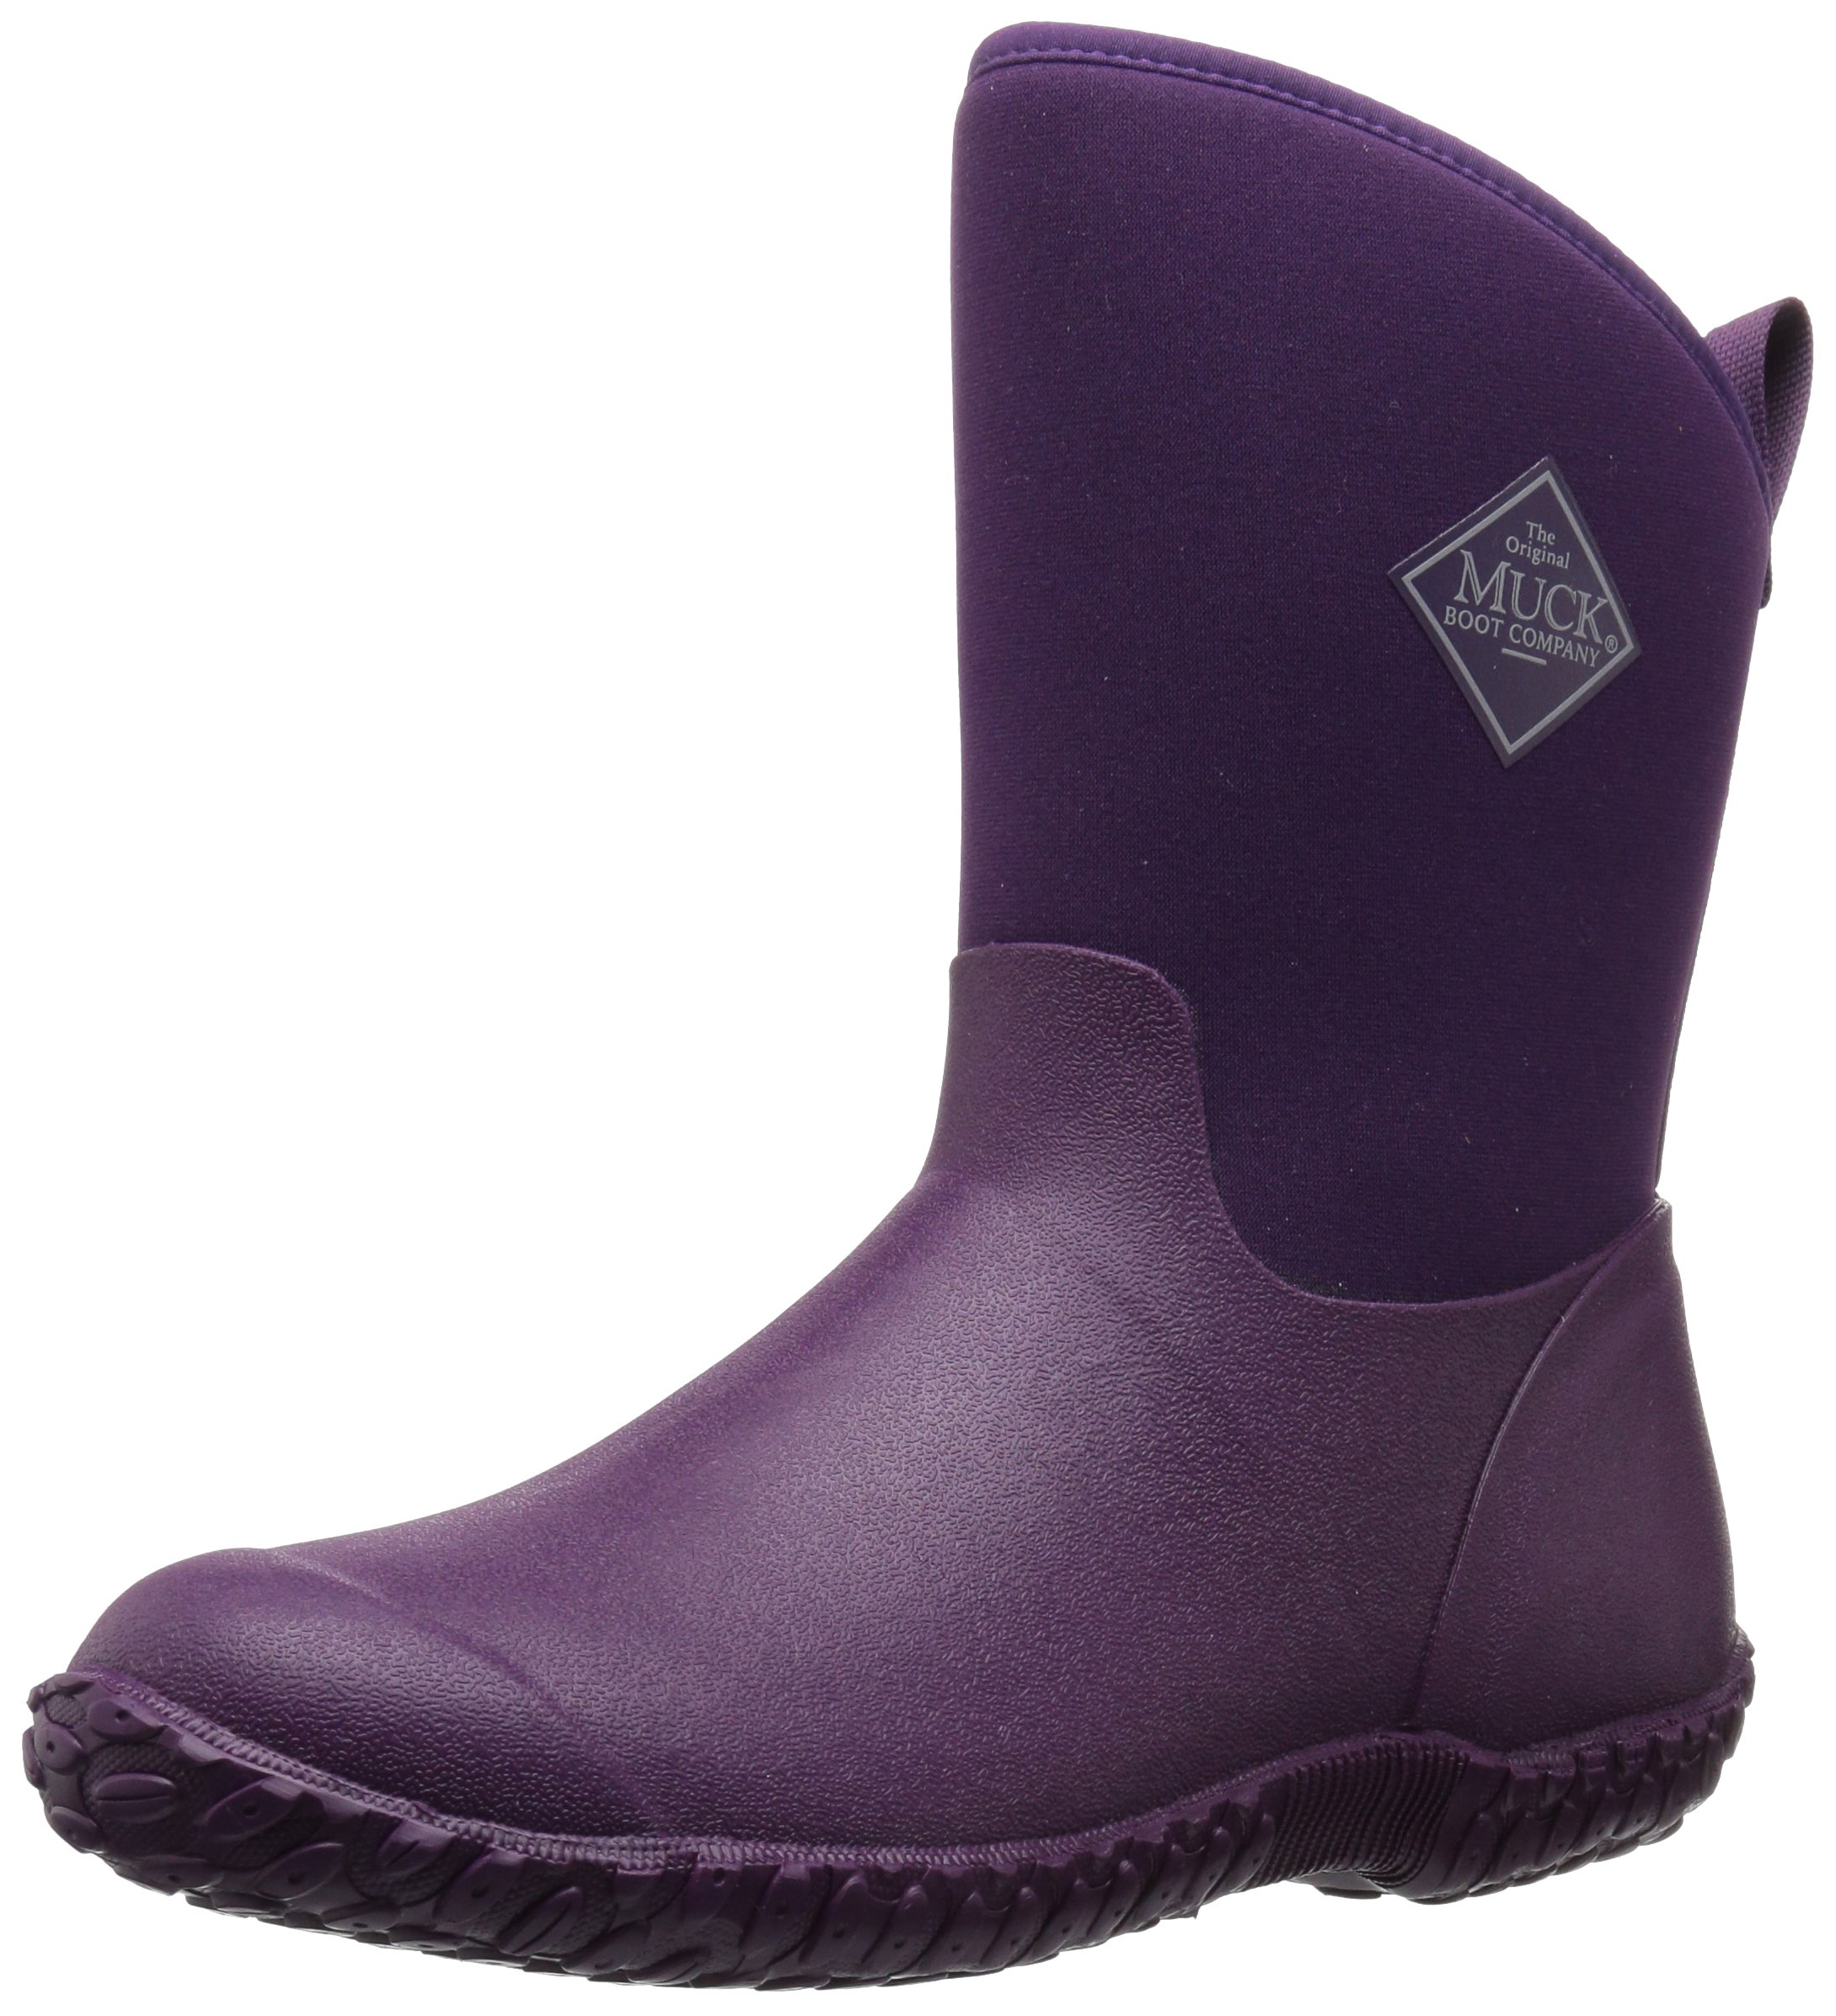 Muck Boot Women's Muckster 2 Mid Snow Boot, Purple with Floral Print Lining, 7 B US by Muck Boot